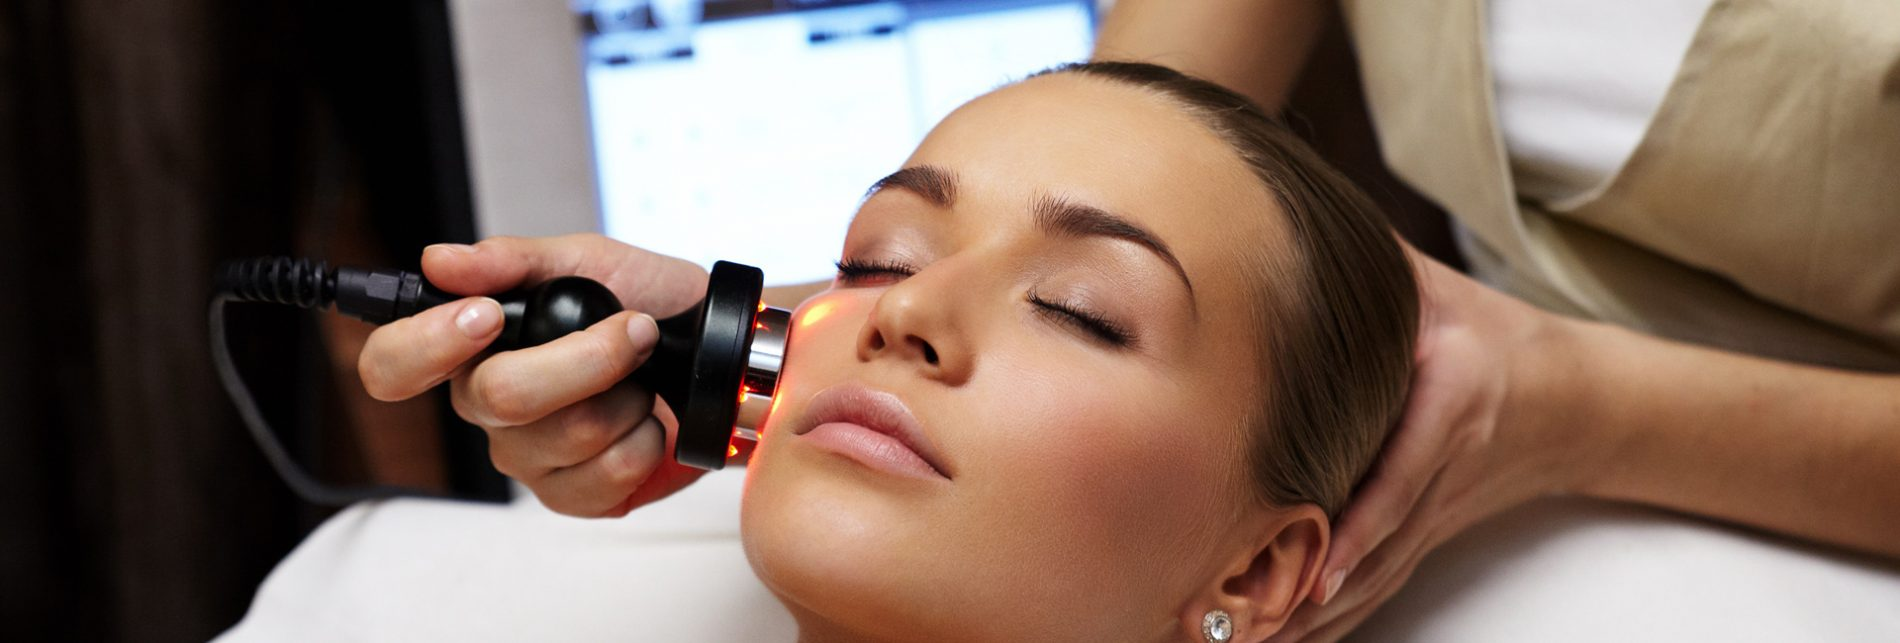 photo facial with laser